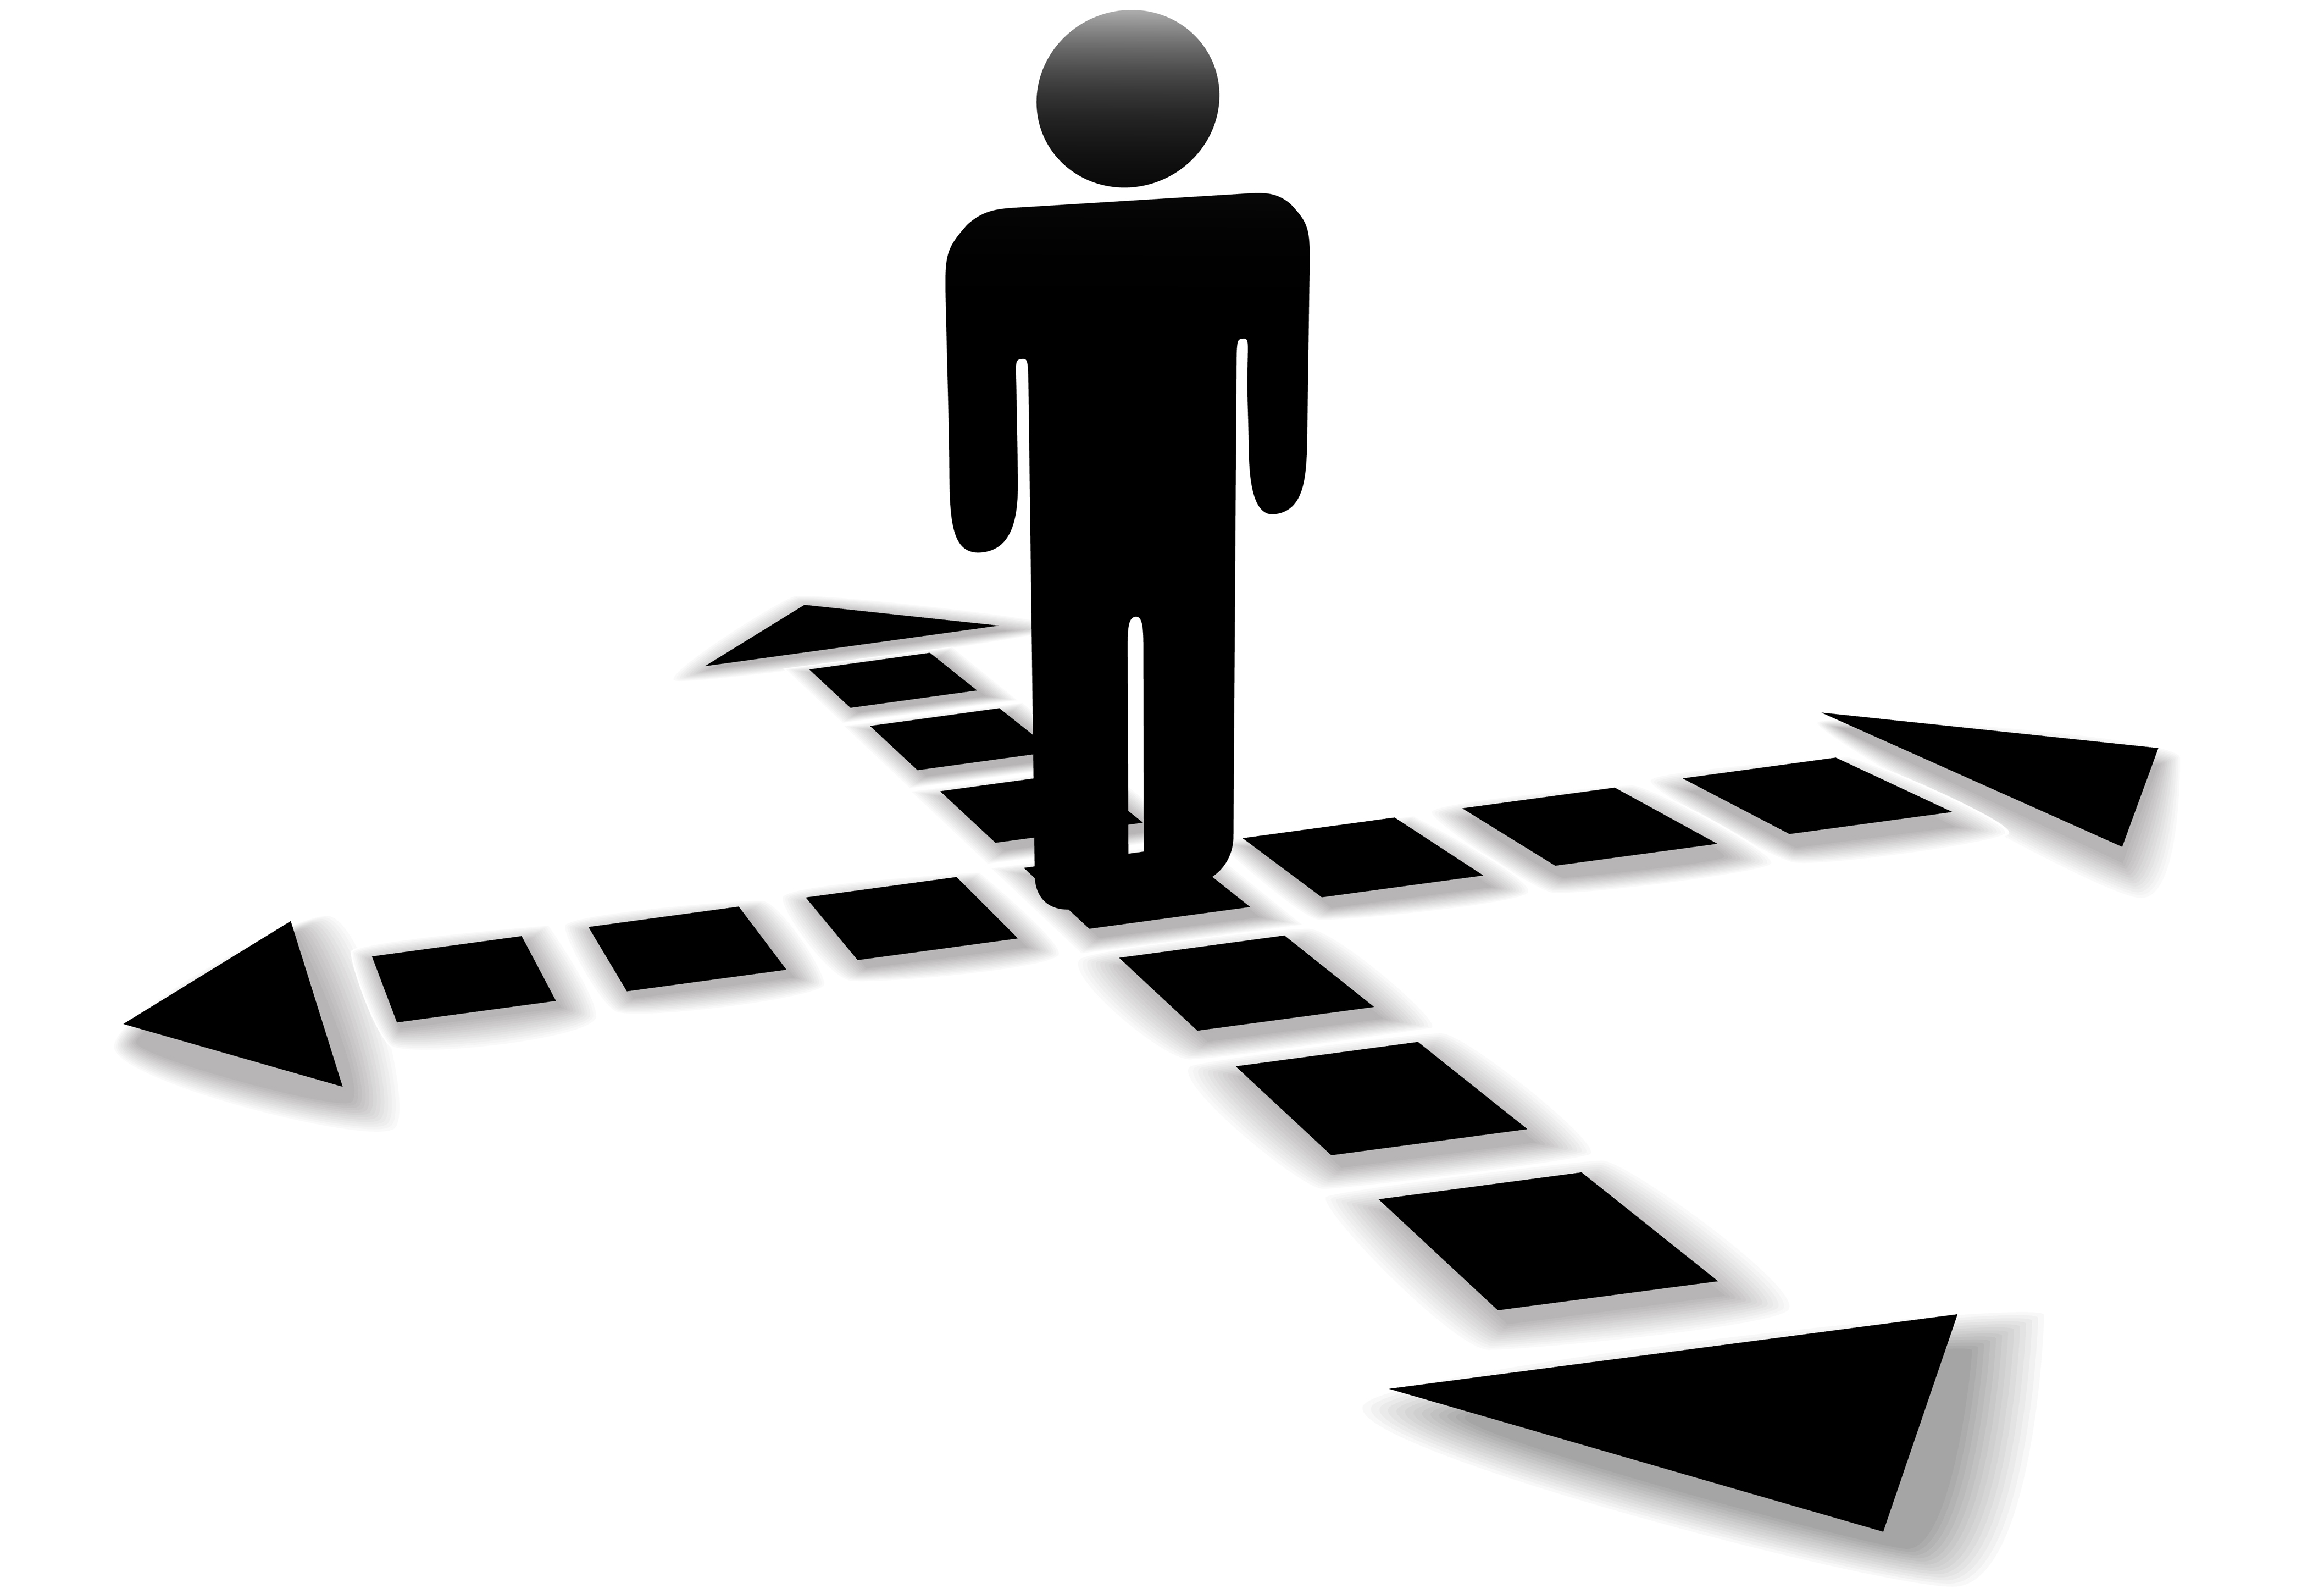 How Do I Know Whether I Have Found The Right Path?